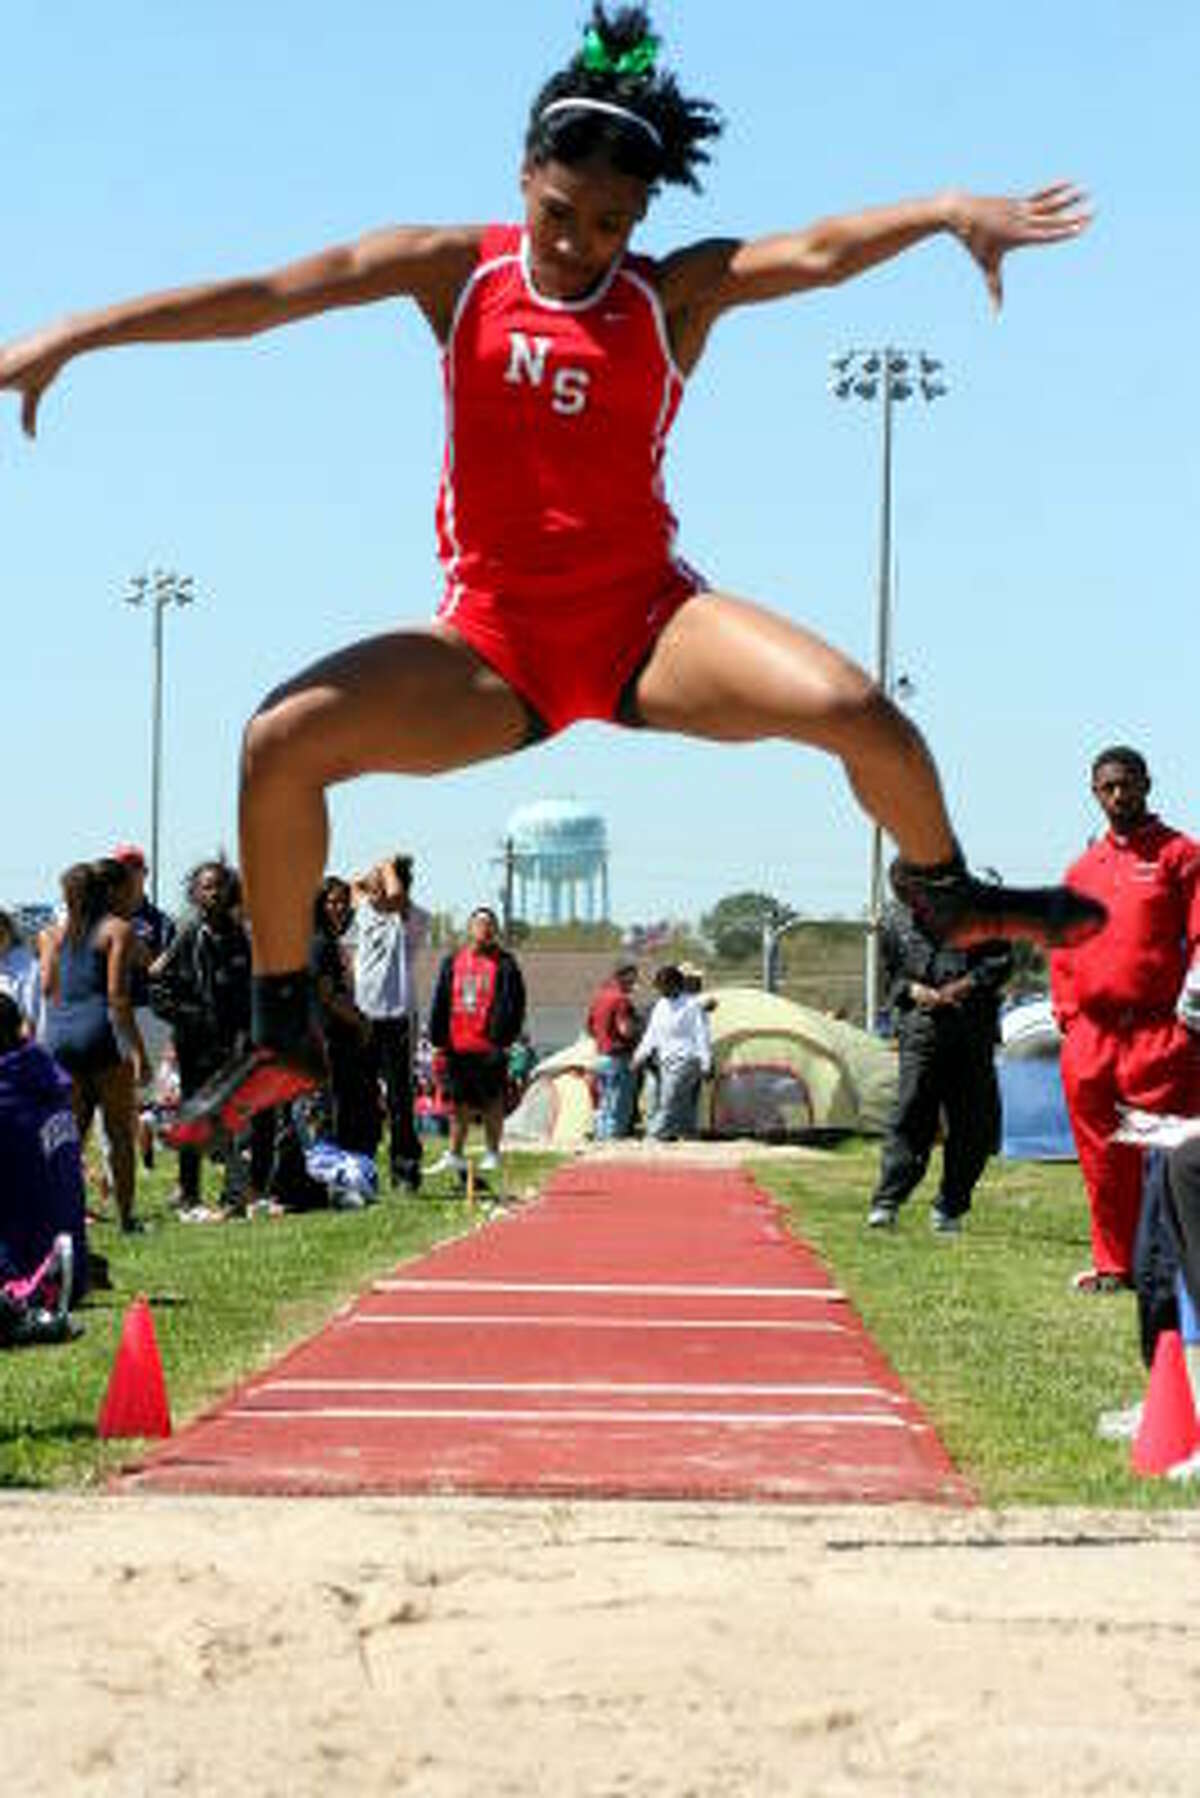 Noth Shore's Ashley Benjamine takes flight in the long jump.